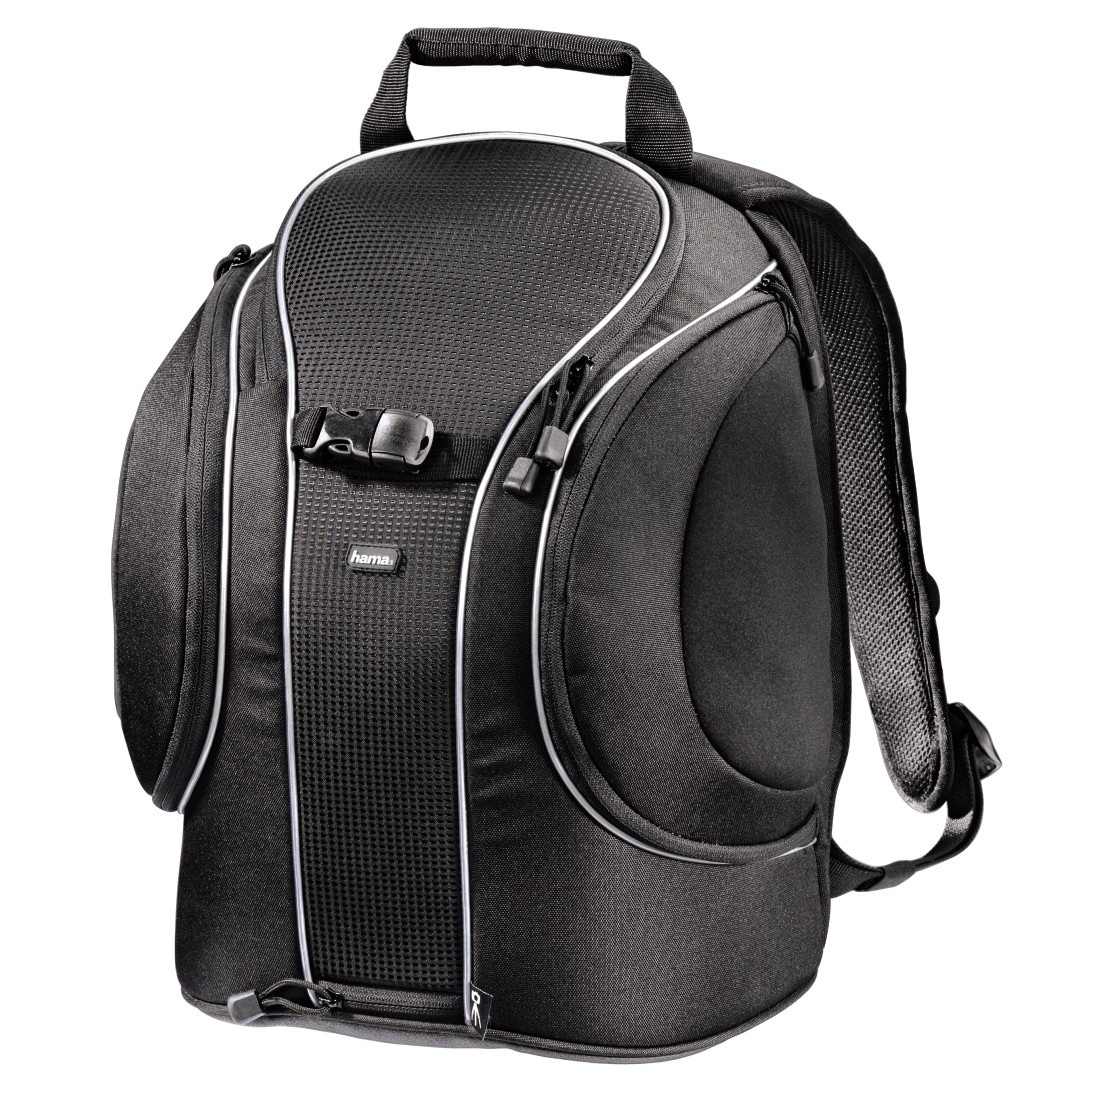 abx High-Res Image - Hama, Daytour Camera Backpack, 180, black